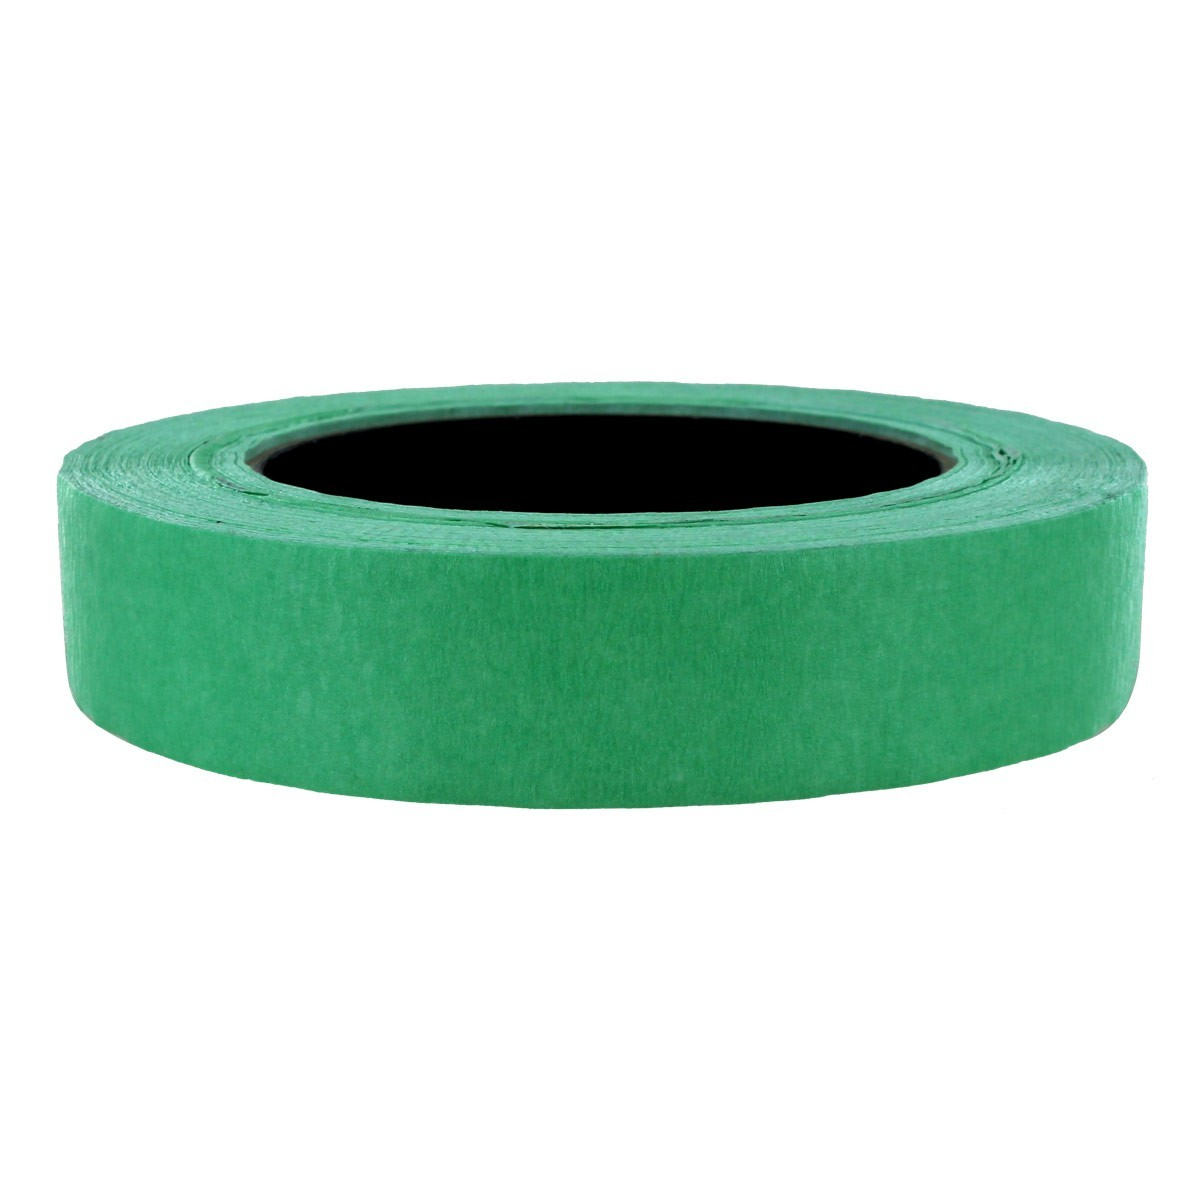 Masking Painters Tape, Green, 36 mm x 55 m, 3M 205, 32/cs